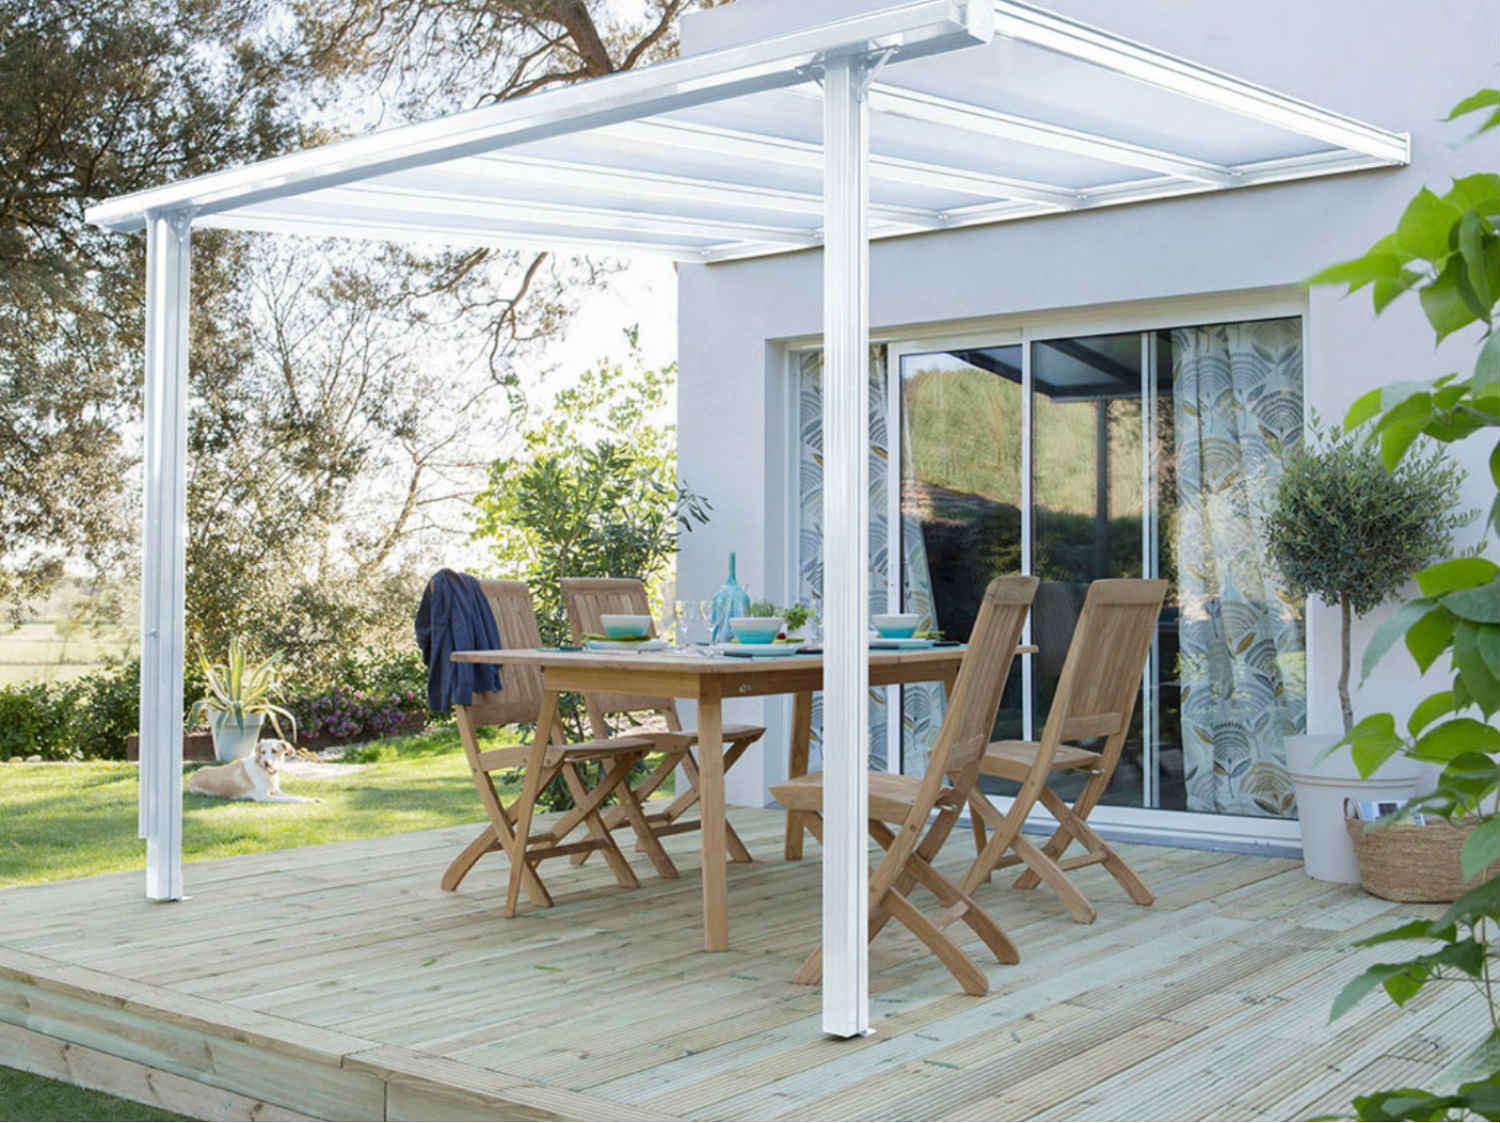 Photo De Terrasse comment choisir sa terrasse en bois ? | leroy merlin